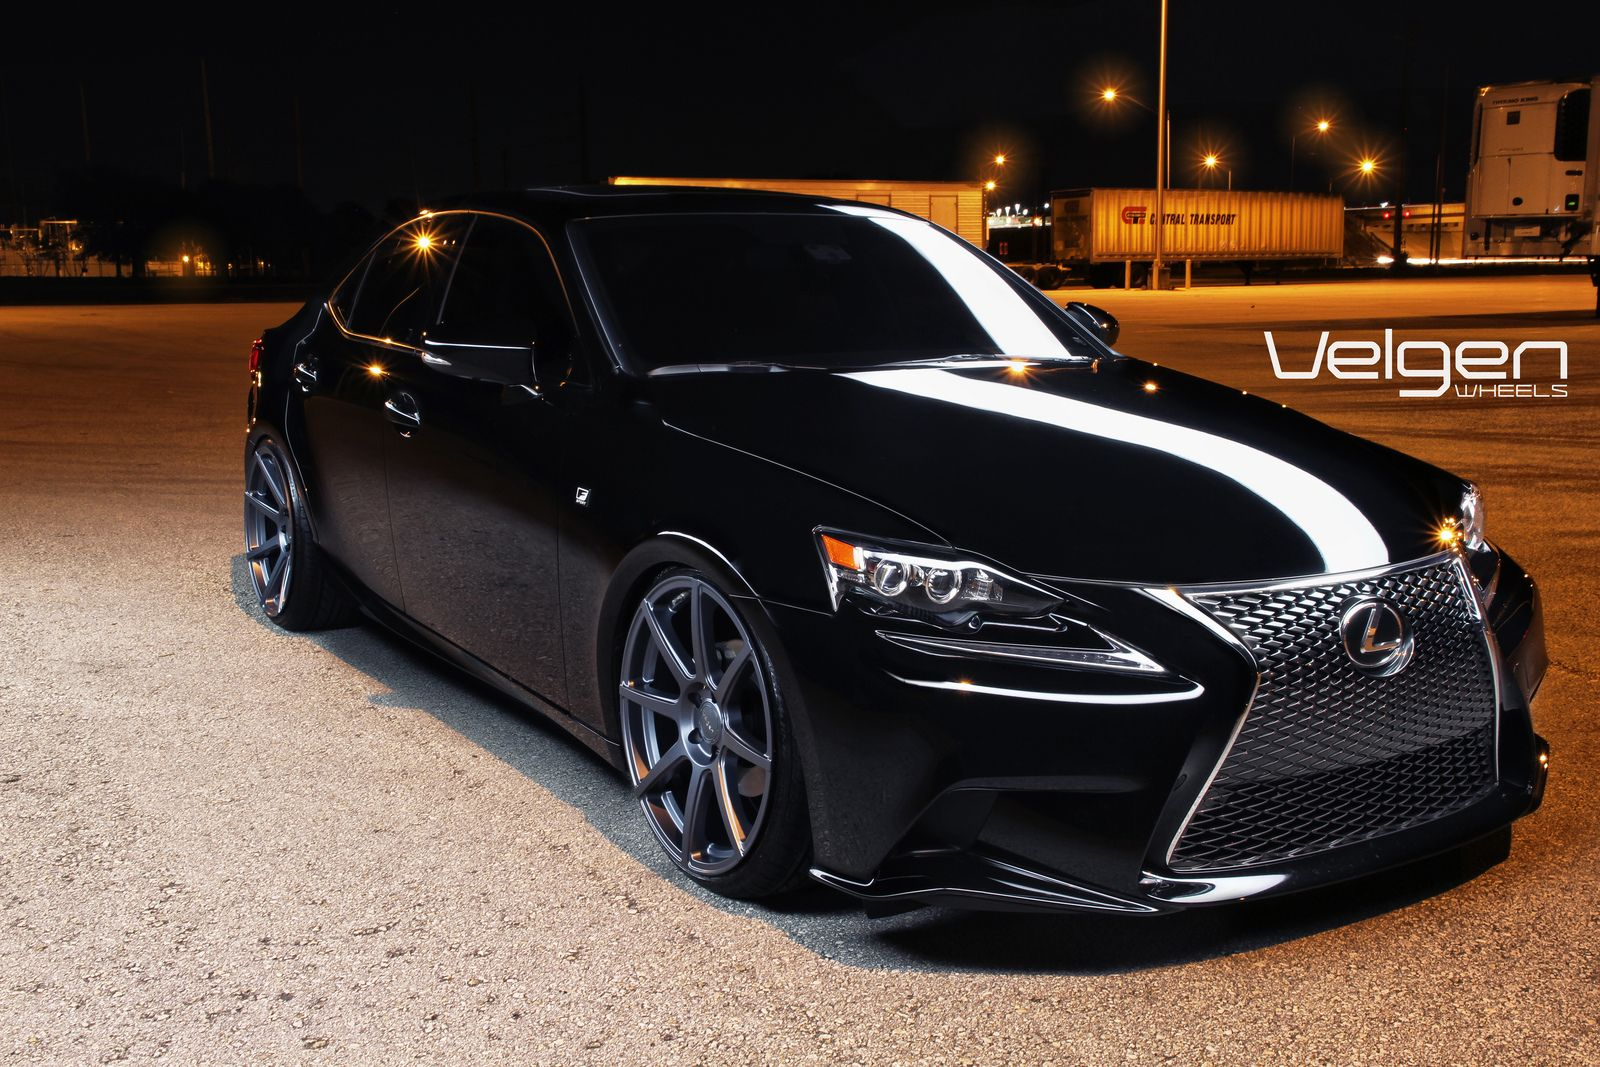 2014 Lexus IS250 F Sport // on Velgen Wheels // VMB8 Matte